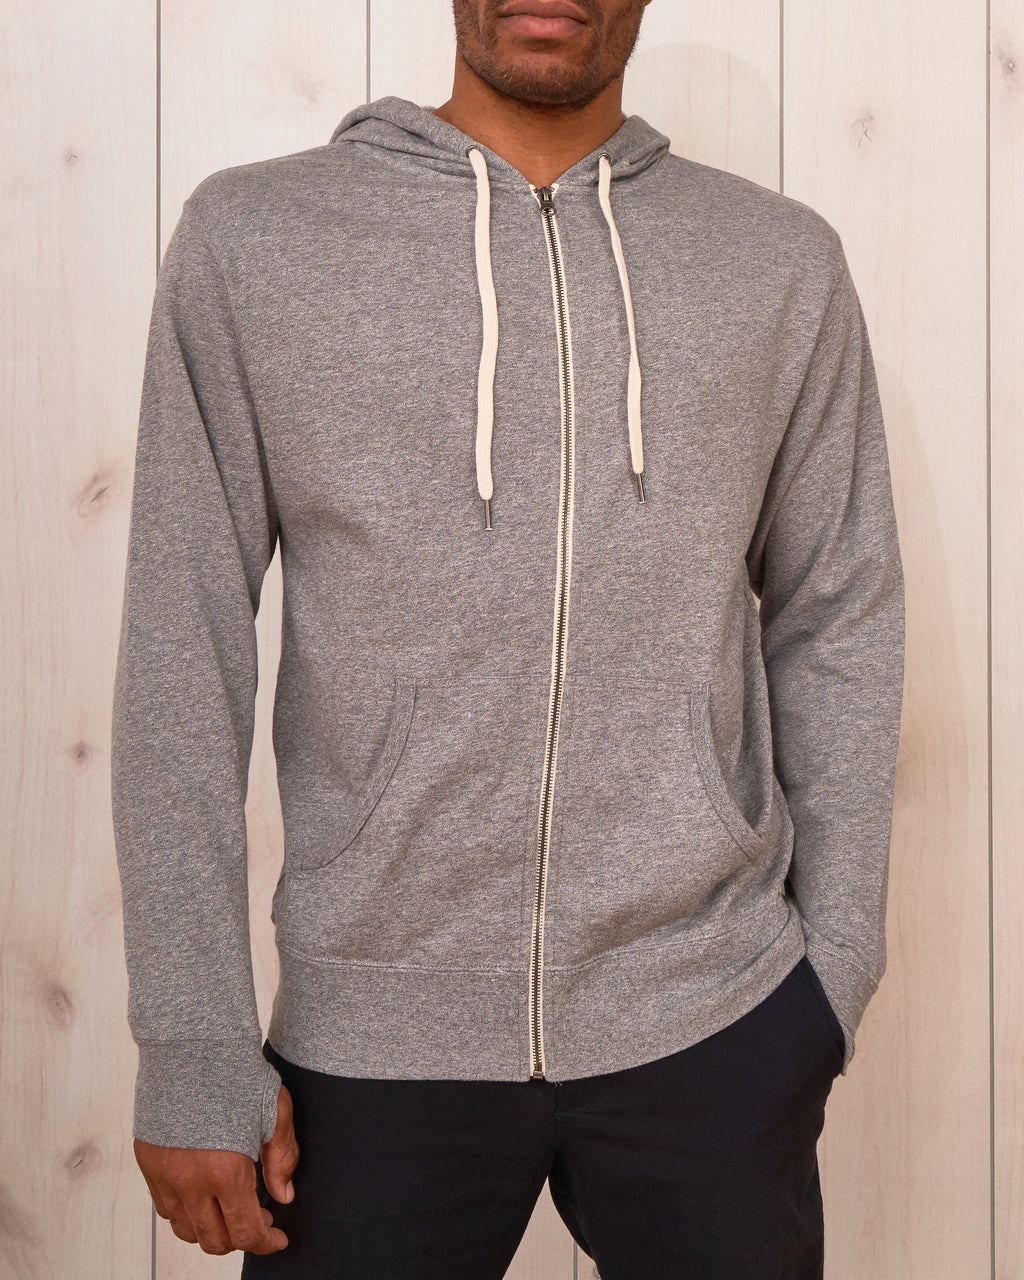 Men's 7 Mile Club French Terry Zip Hoodie